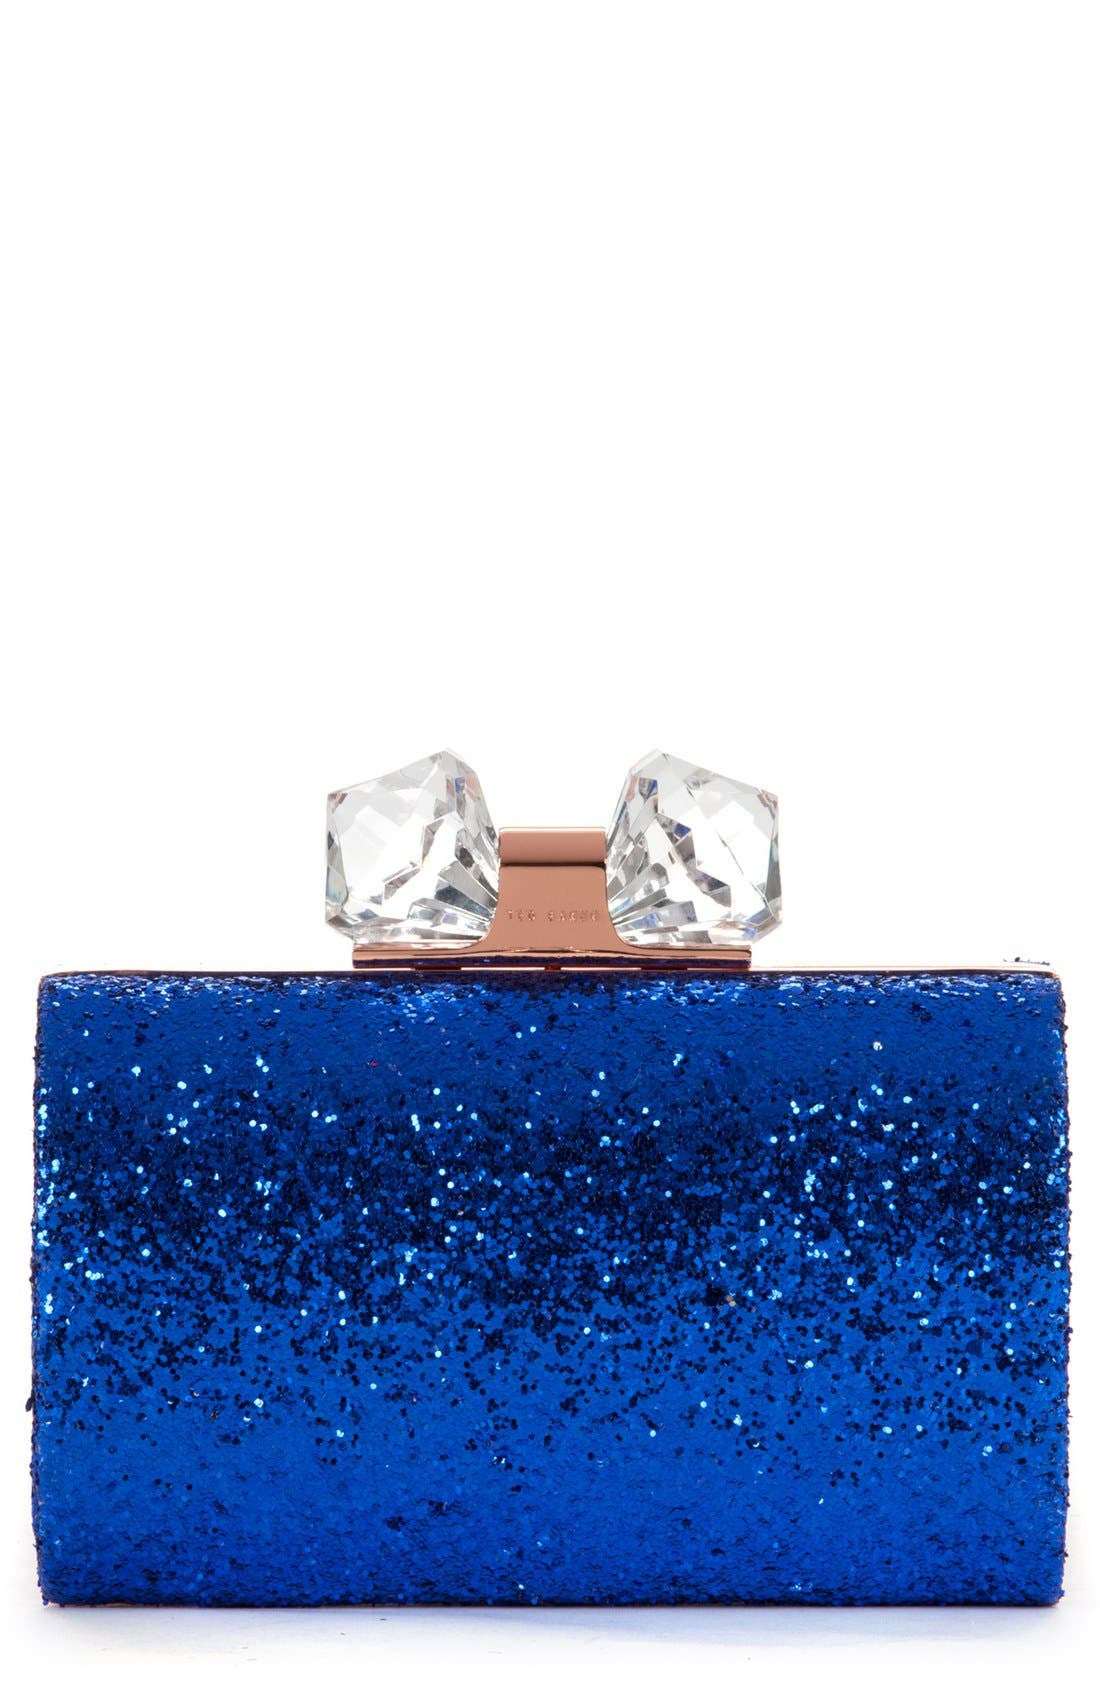 Main Image - Ted Baker London 'Karsie' Glitter Frame Clutch